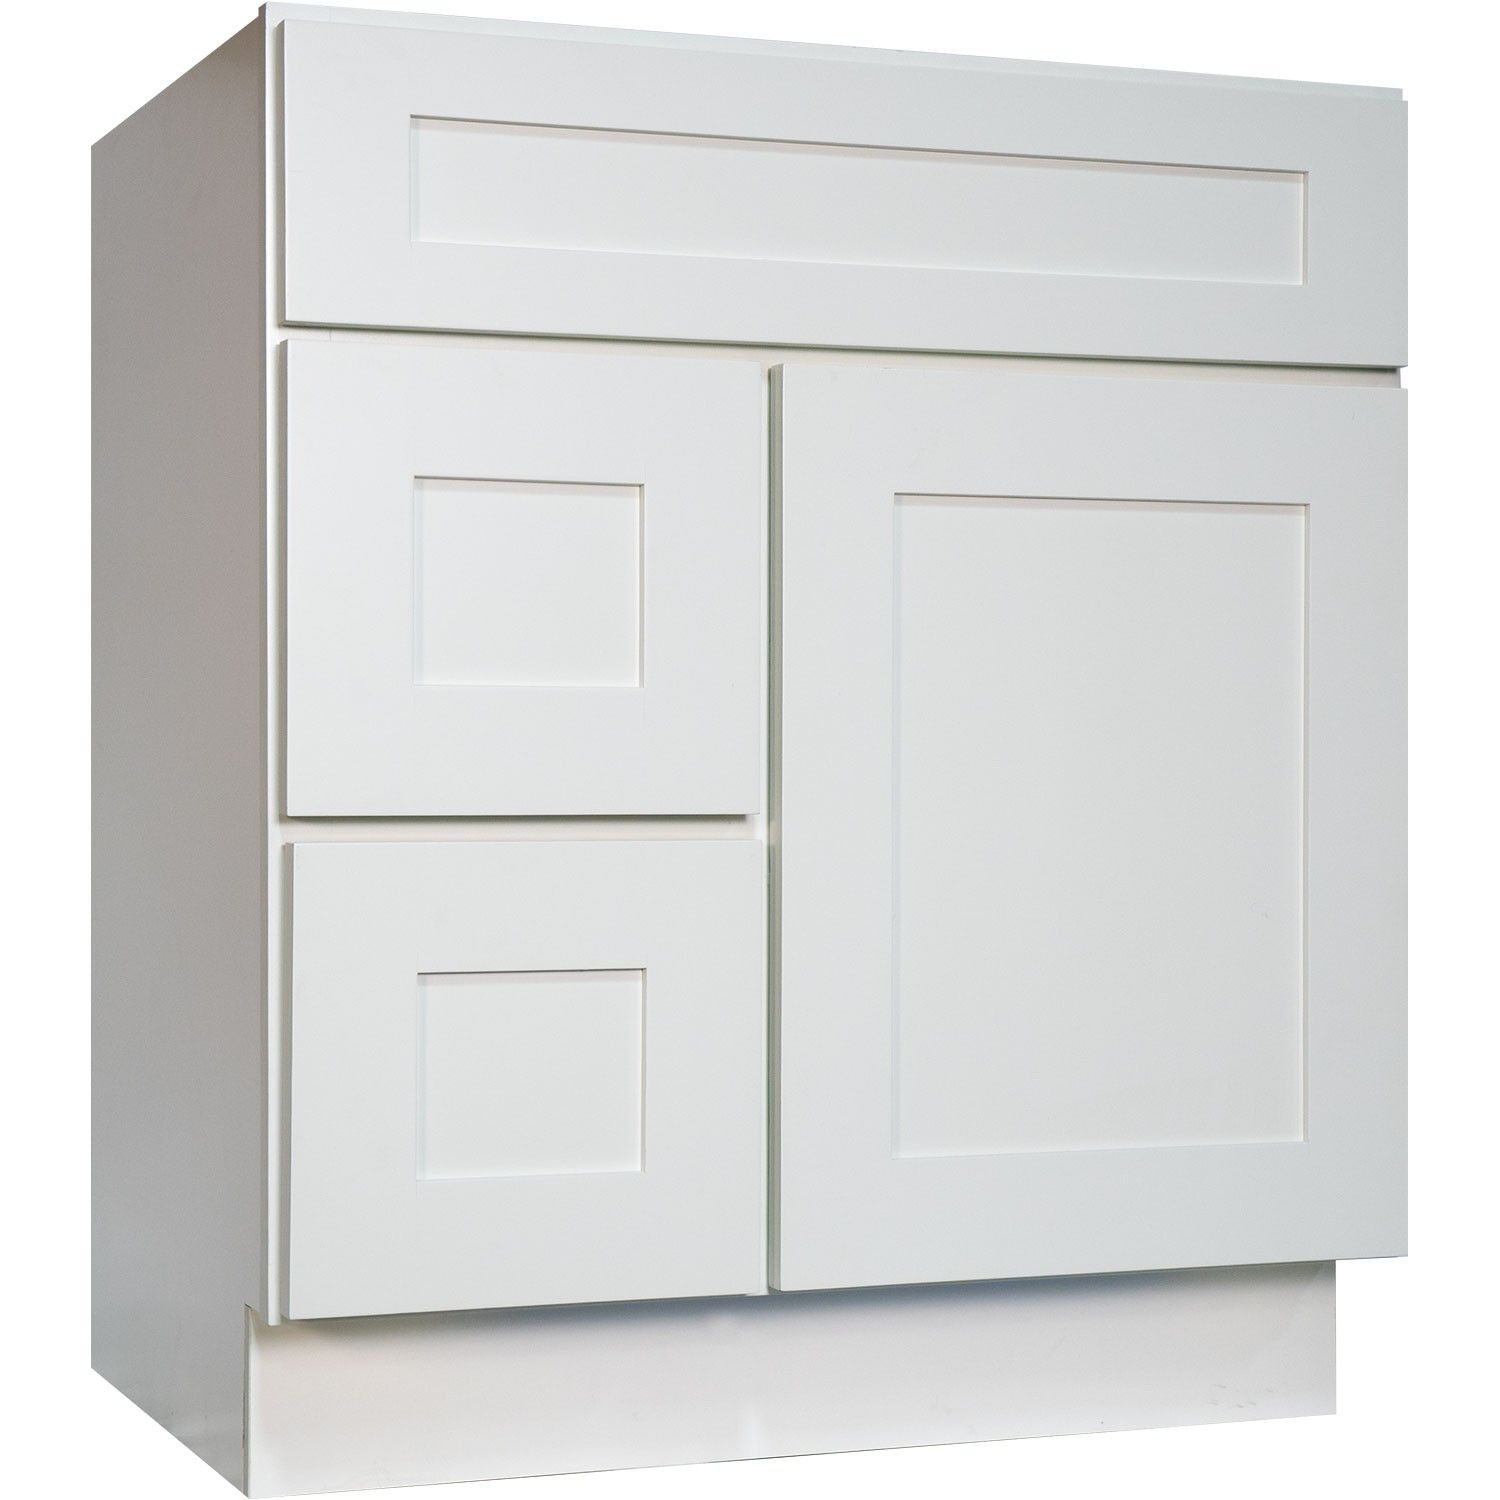 30 Inch Bathroom Vanity Single Sink Cabinet In Shaker White With Soft Close  Drawers & Door